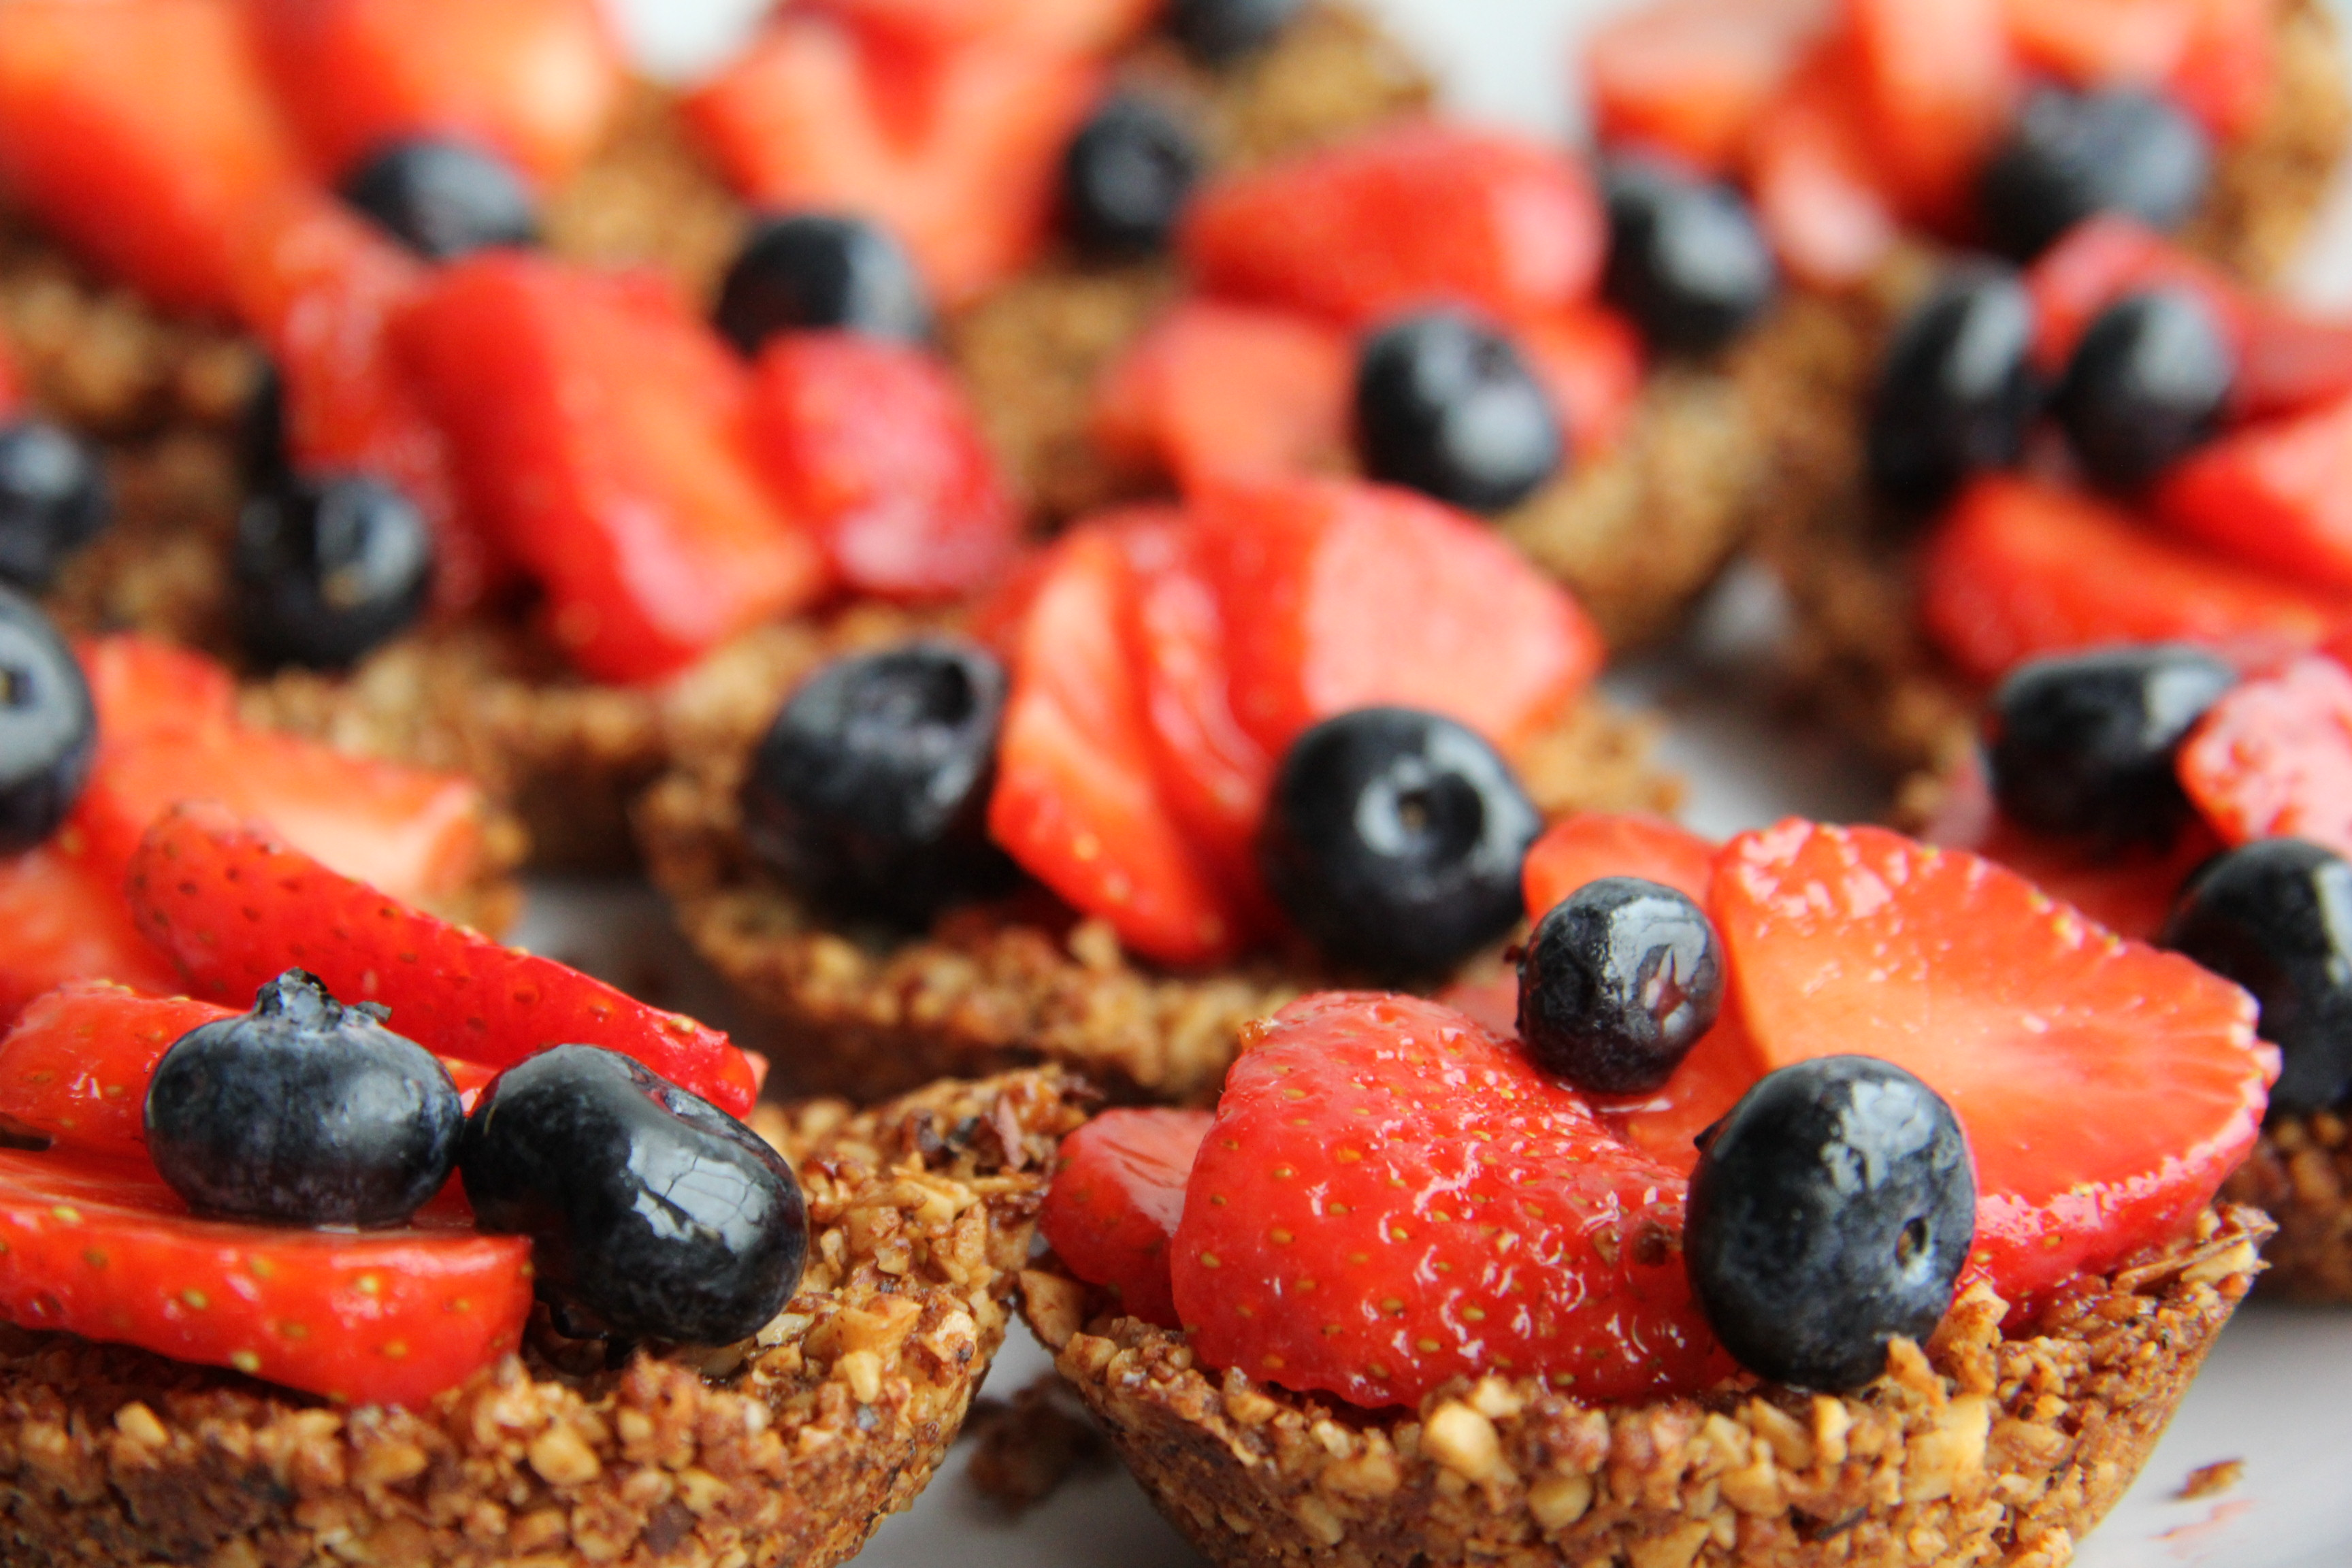 Strawberry & Blueberry Tarts with Ginger Nut Crust ...